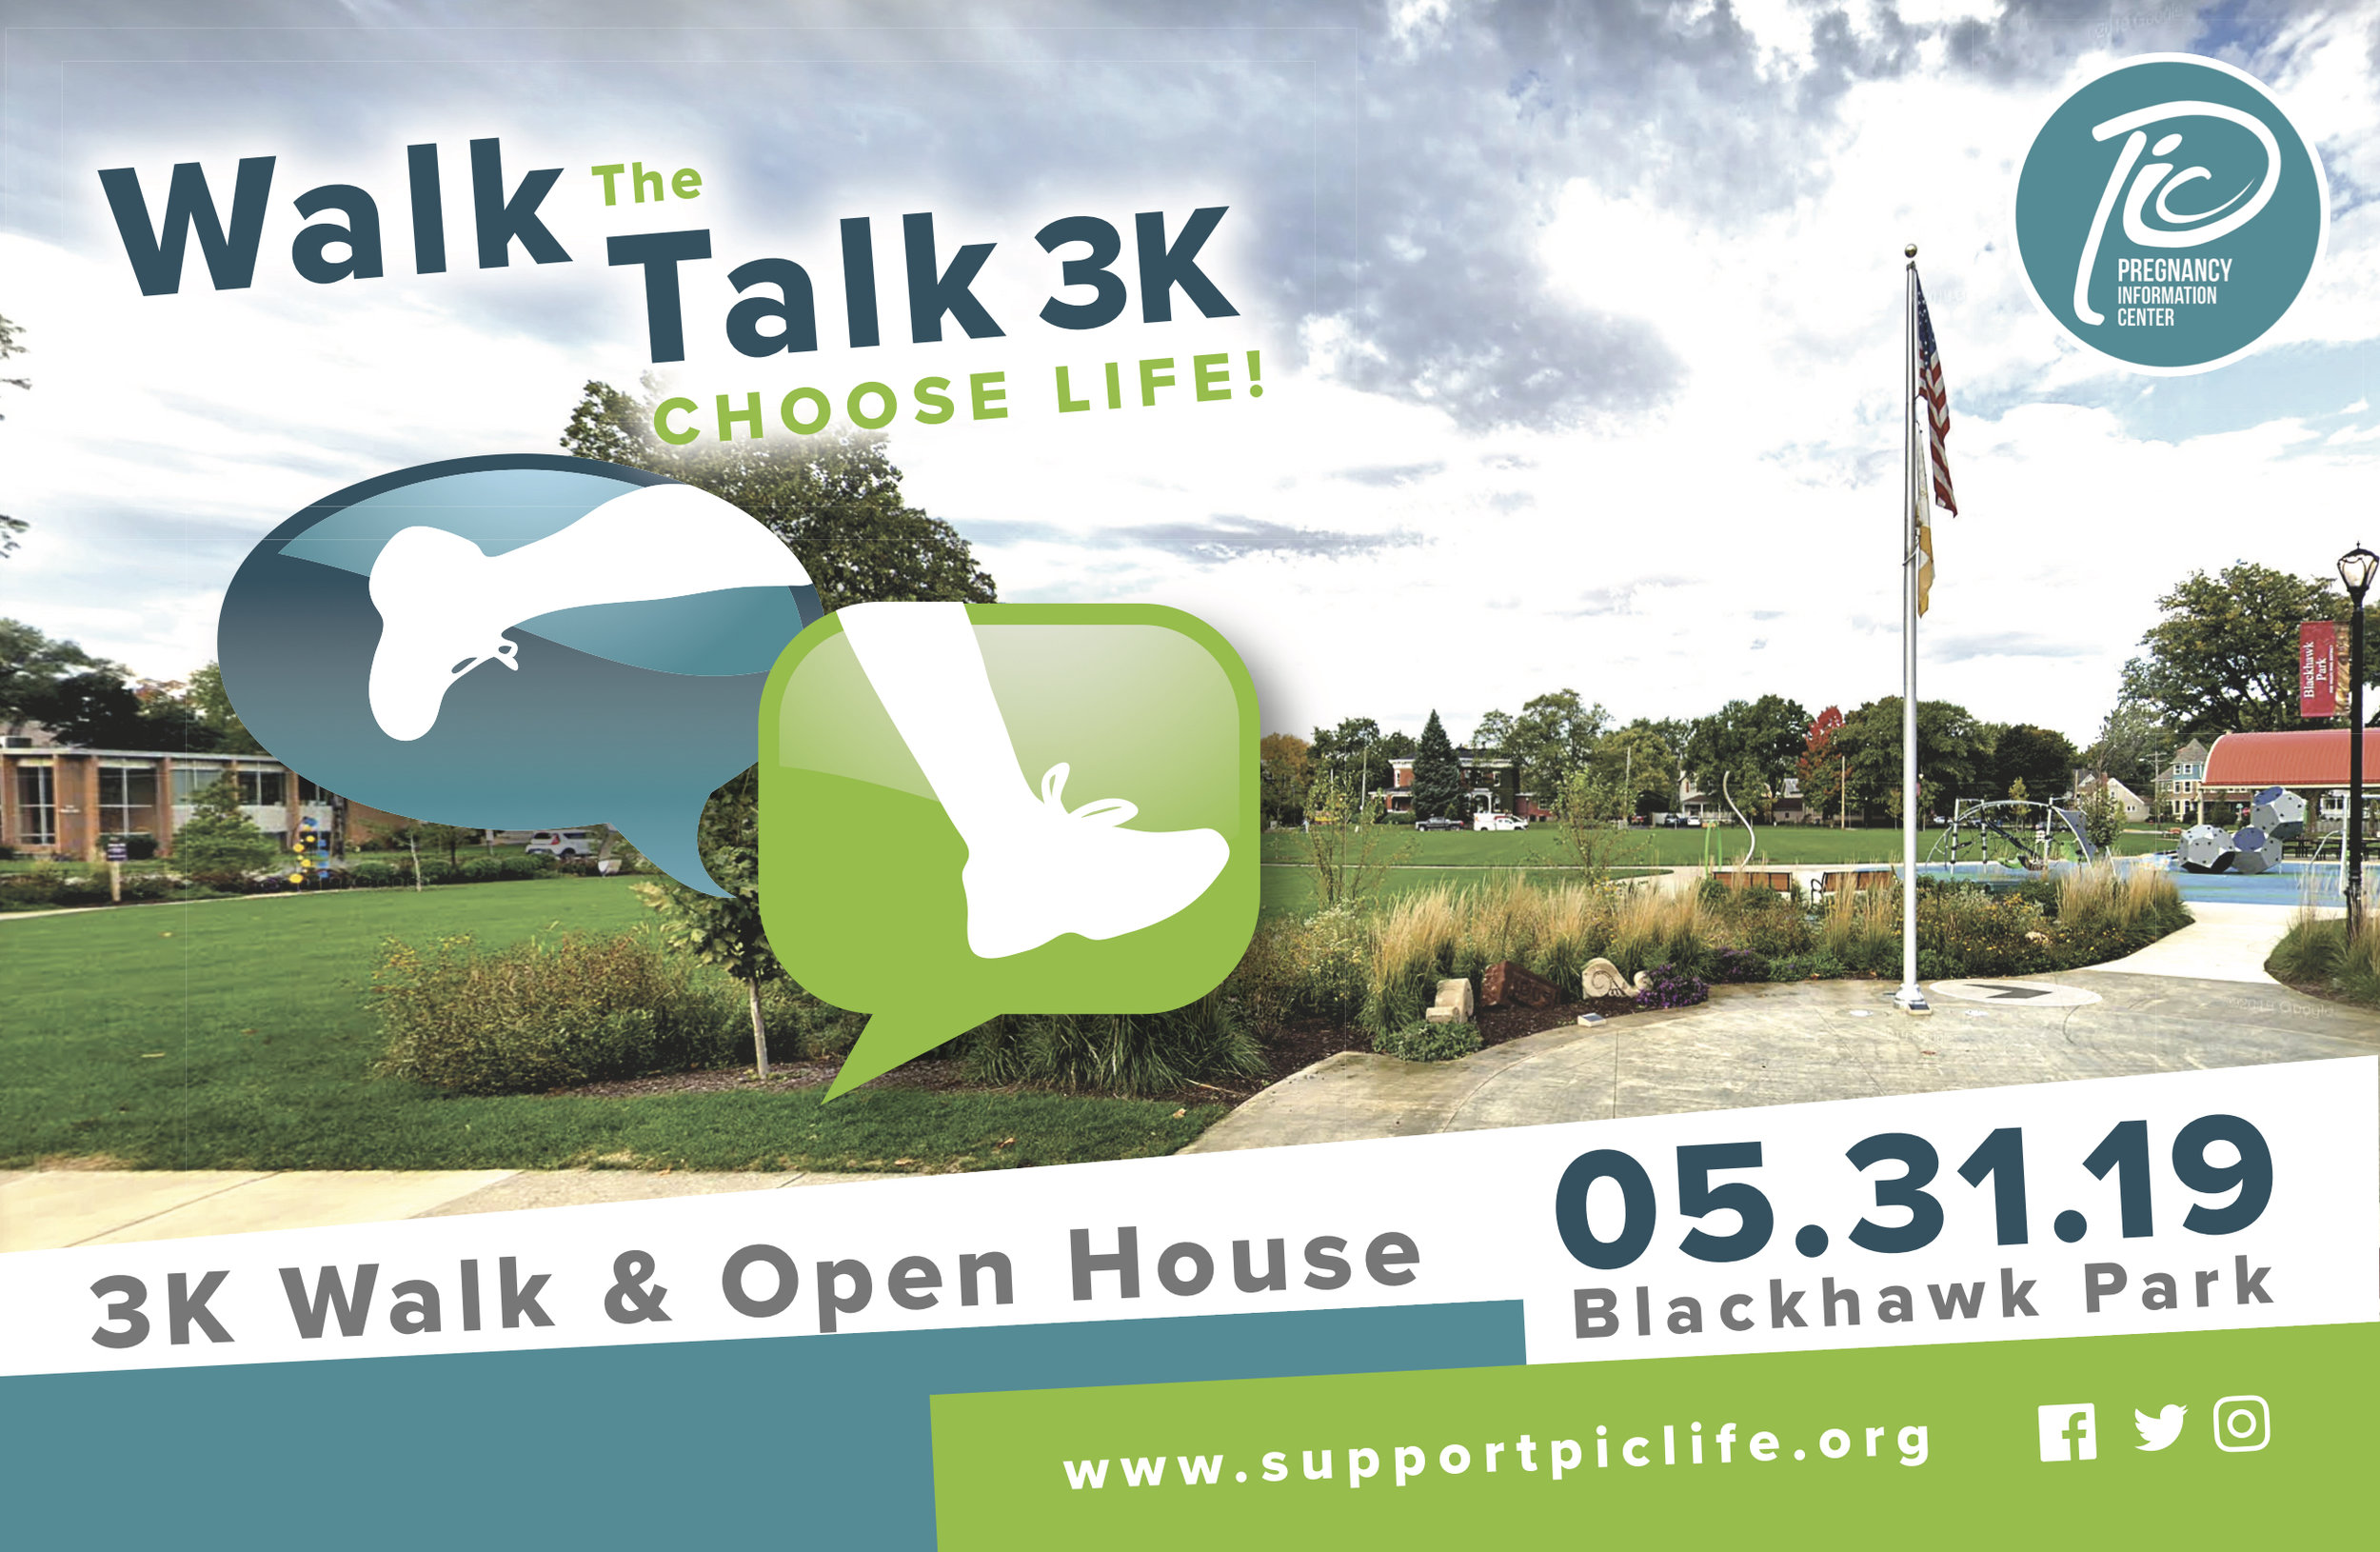 Join us for a fun walk in the park - Friday, May 31, 2019Blackhawk Park (1 block west of PIC)4:30 – 8:00 Open House5:30 pm walk check in6:00 pm walk begins